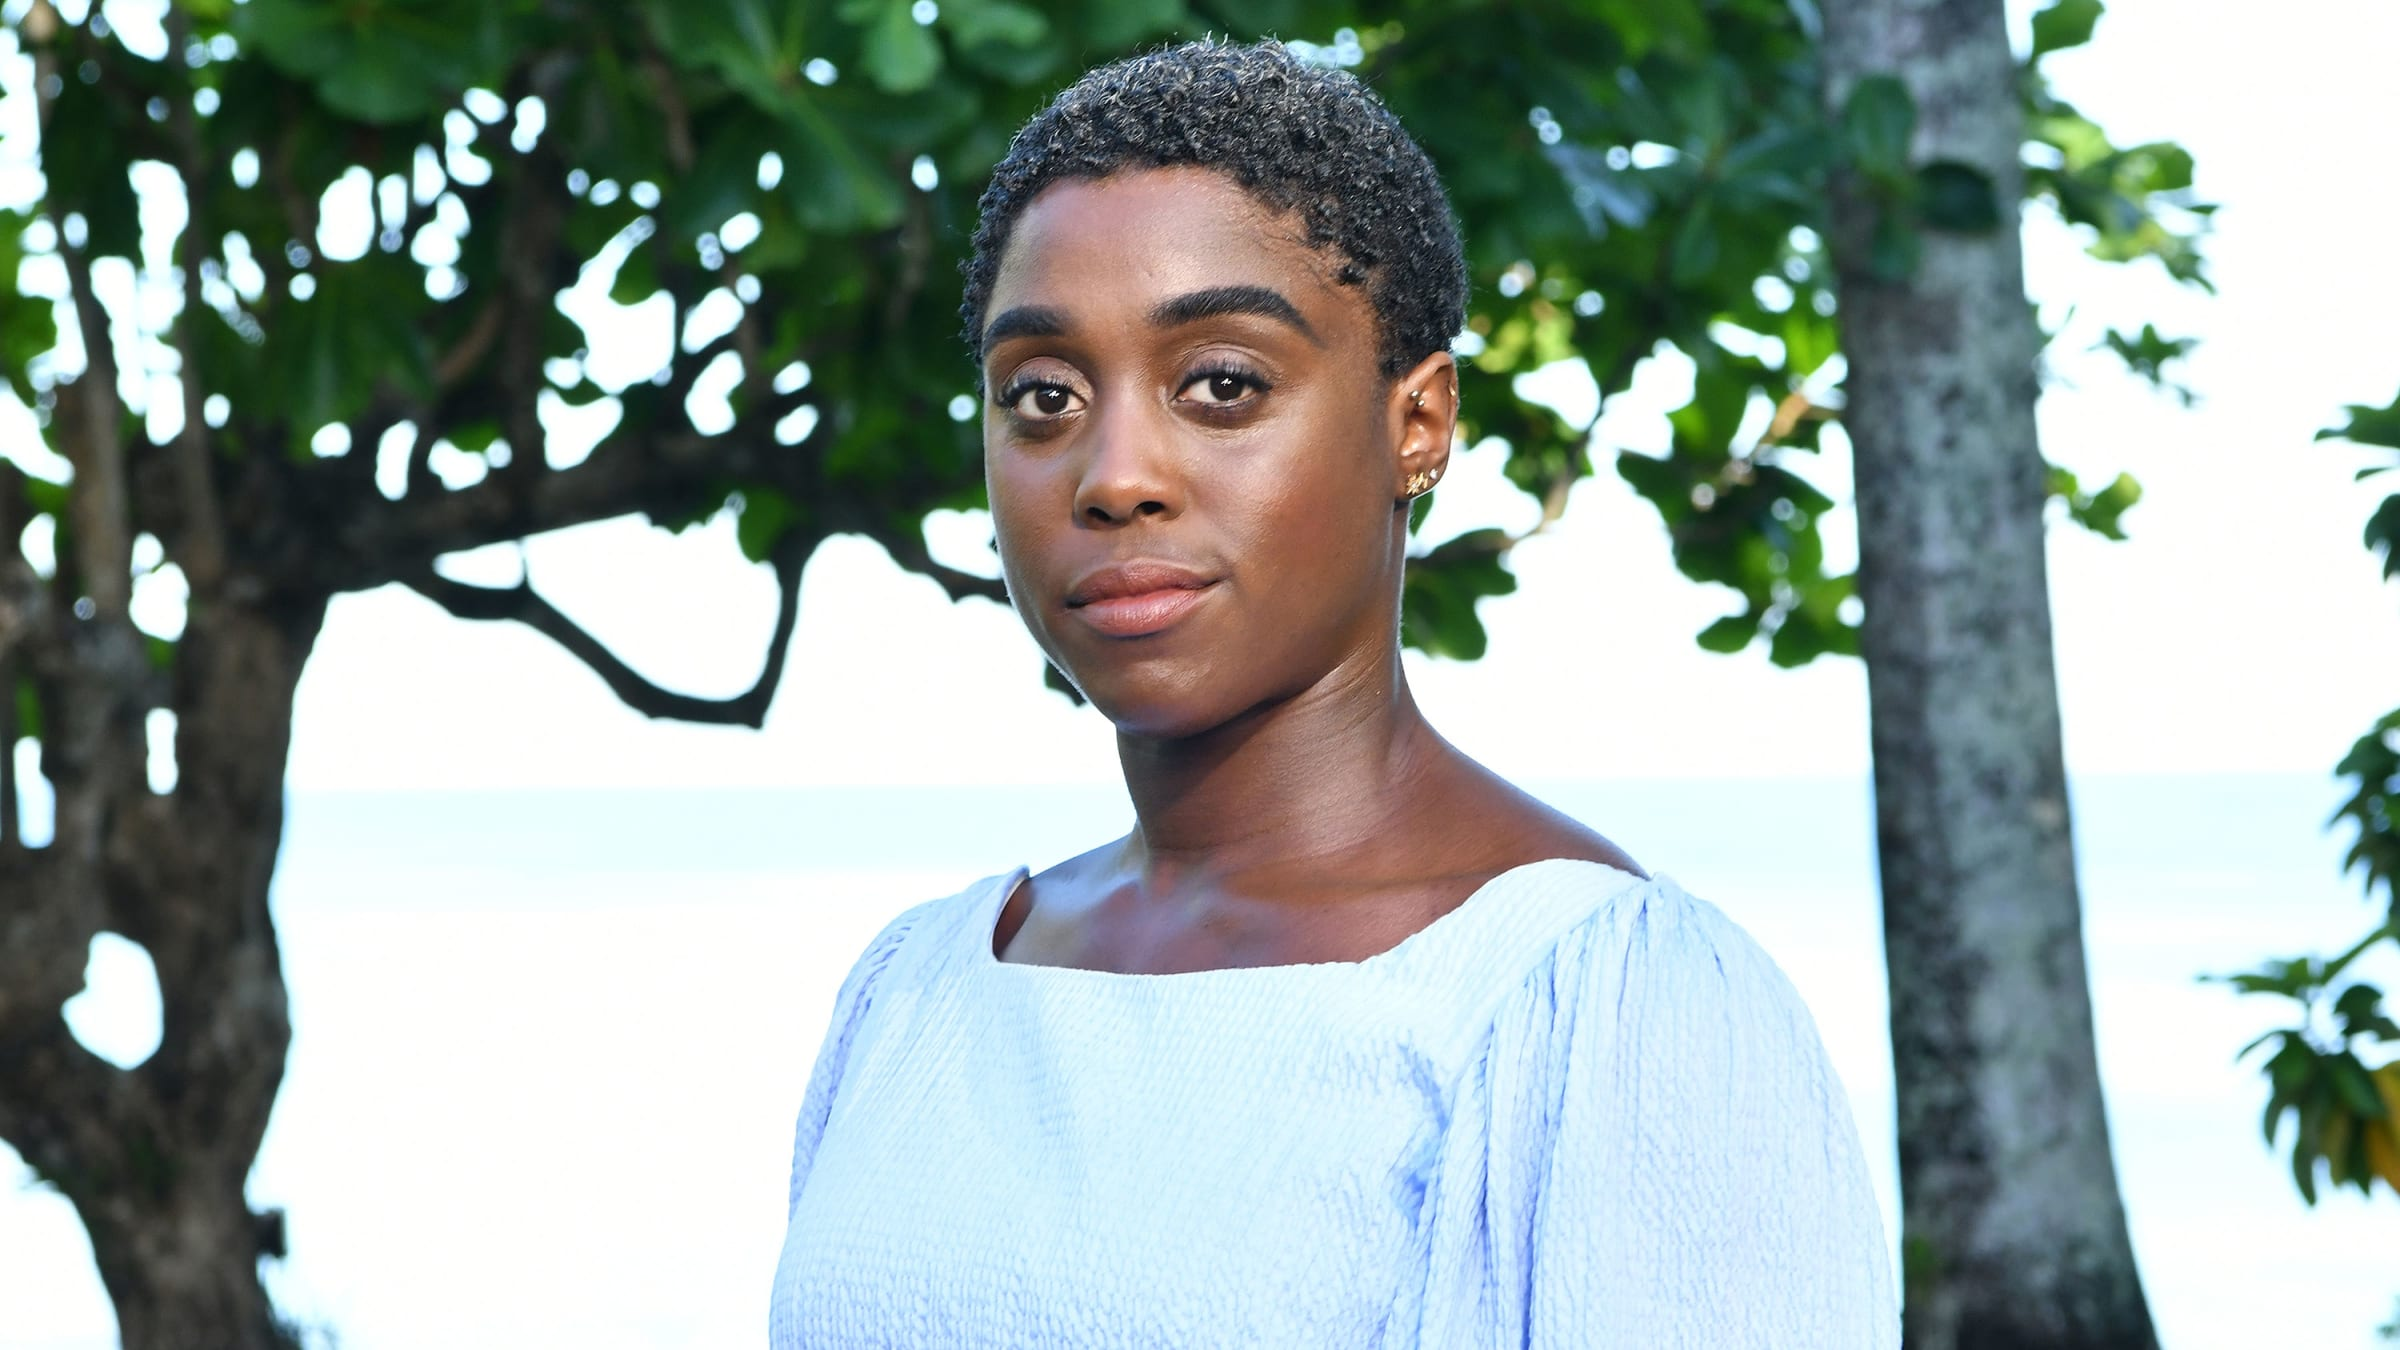 Lashana Lynch will play 007 in new James Bond movie